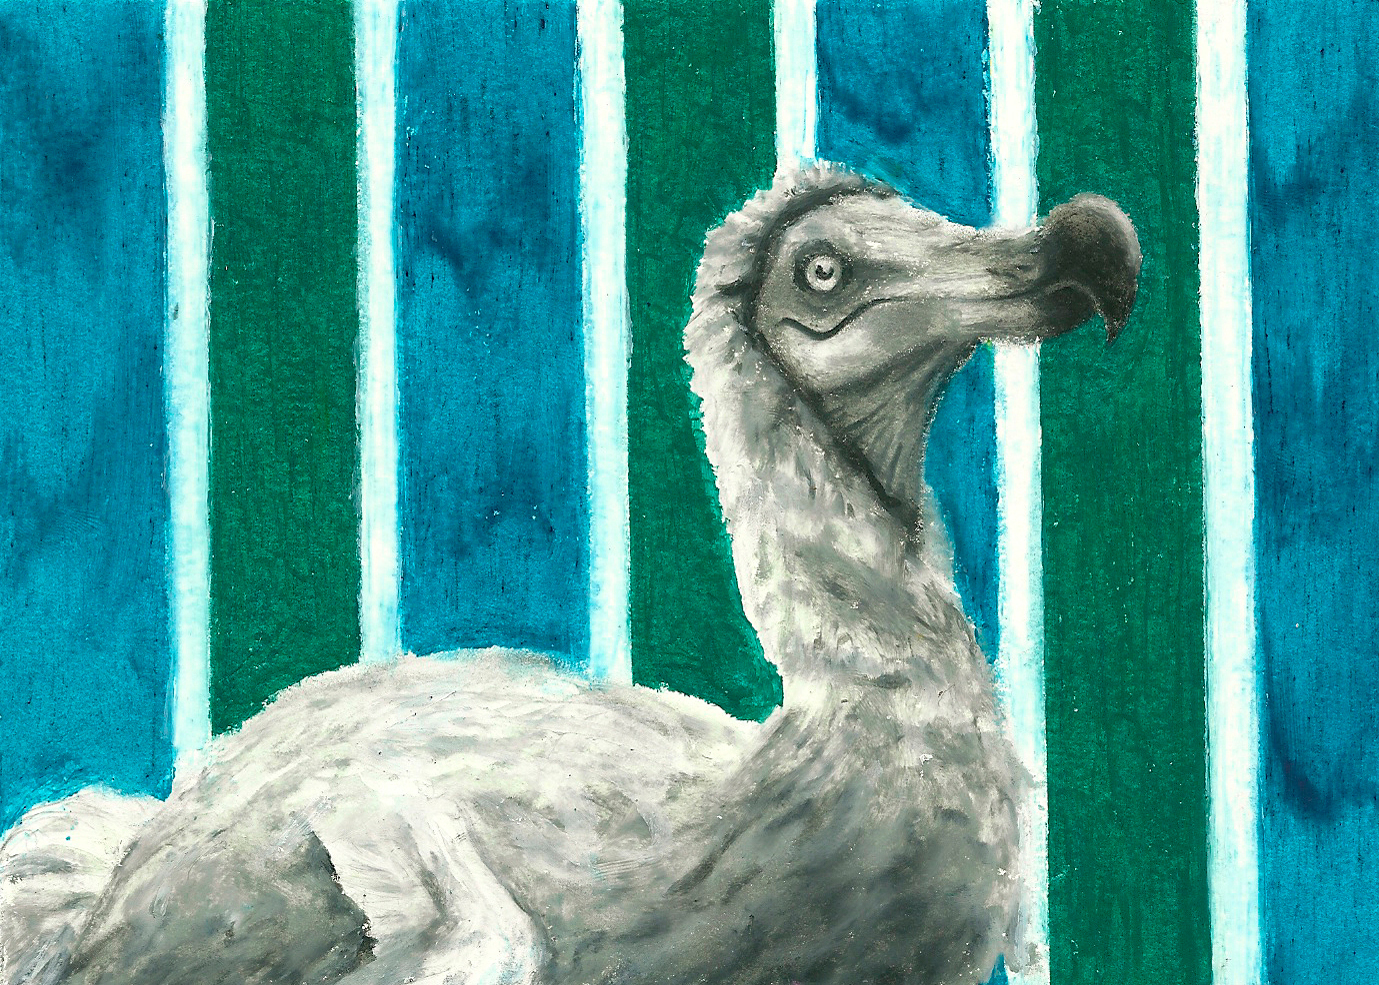 Dodo with Striped Wallpaper